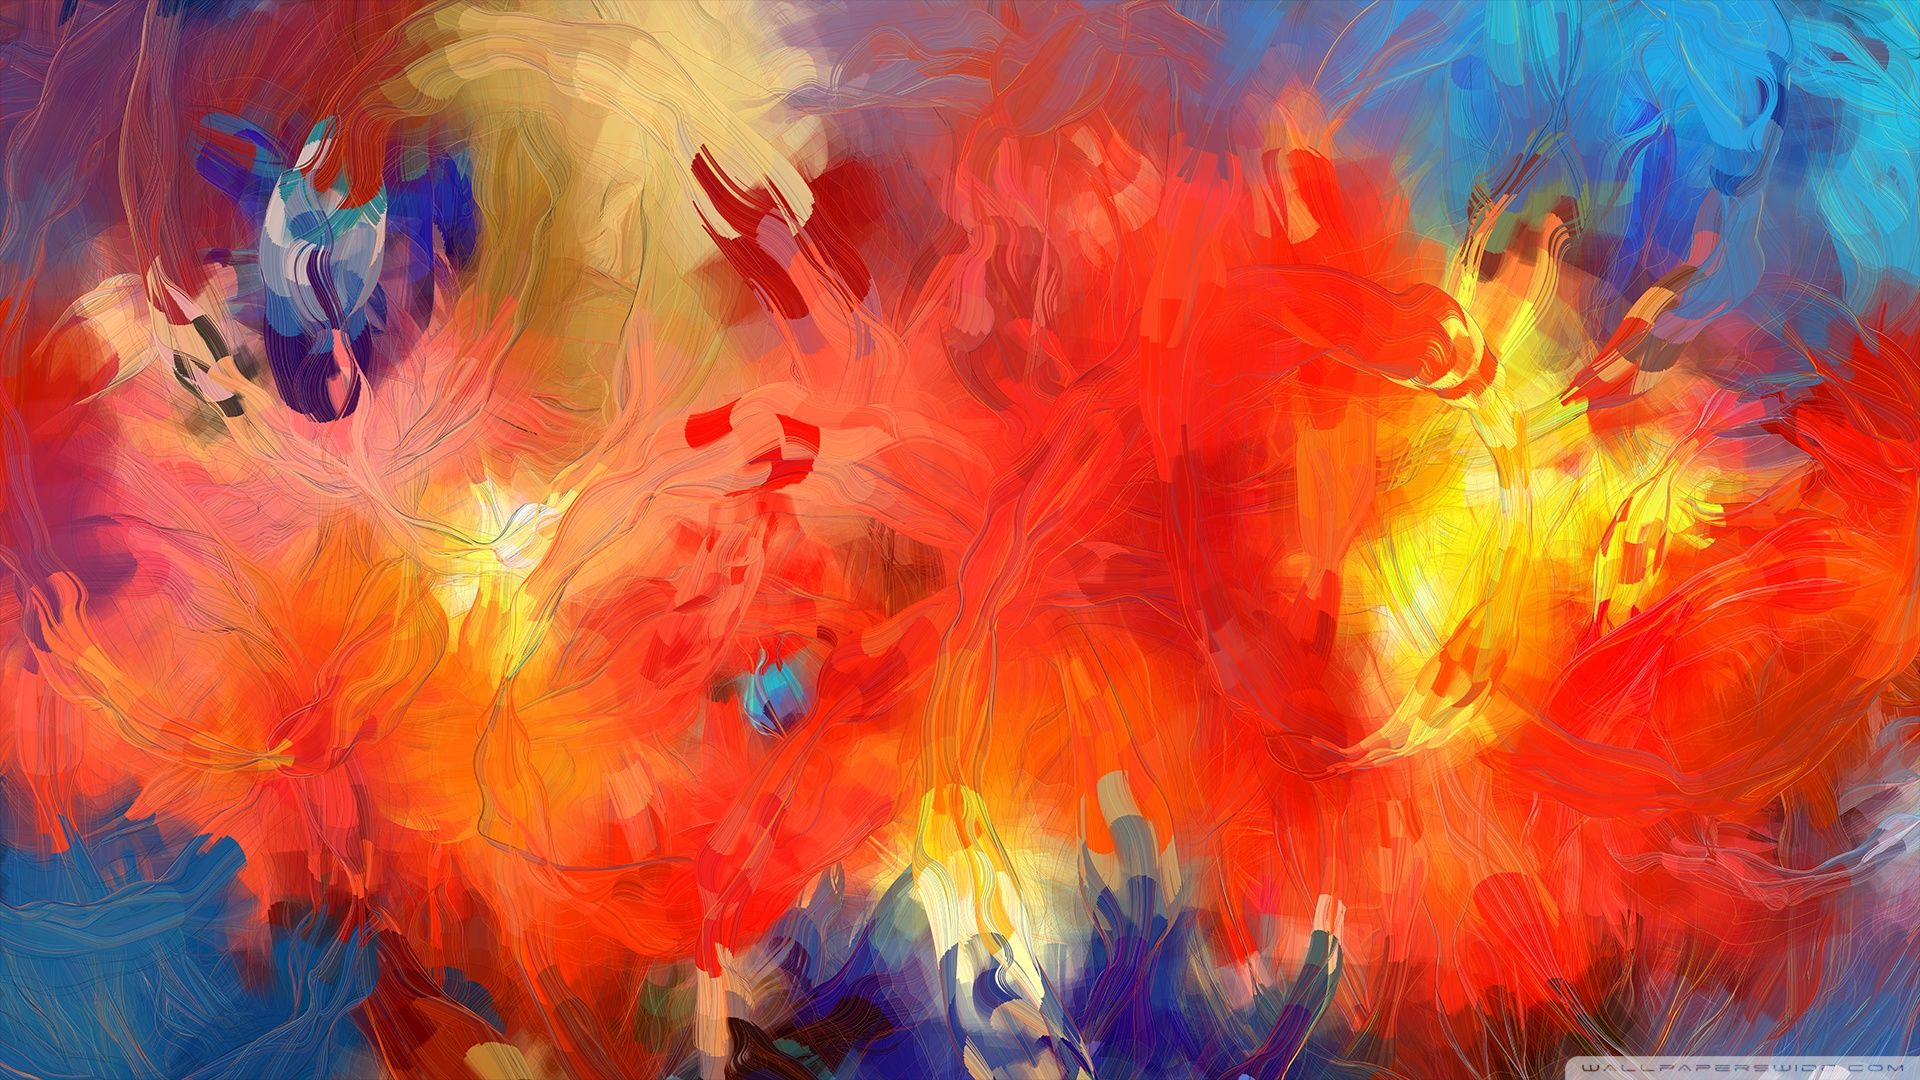 Image For Famous Abstract Art Paintings Wallpaper Free Desktop